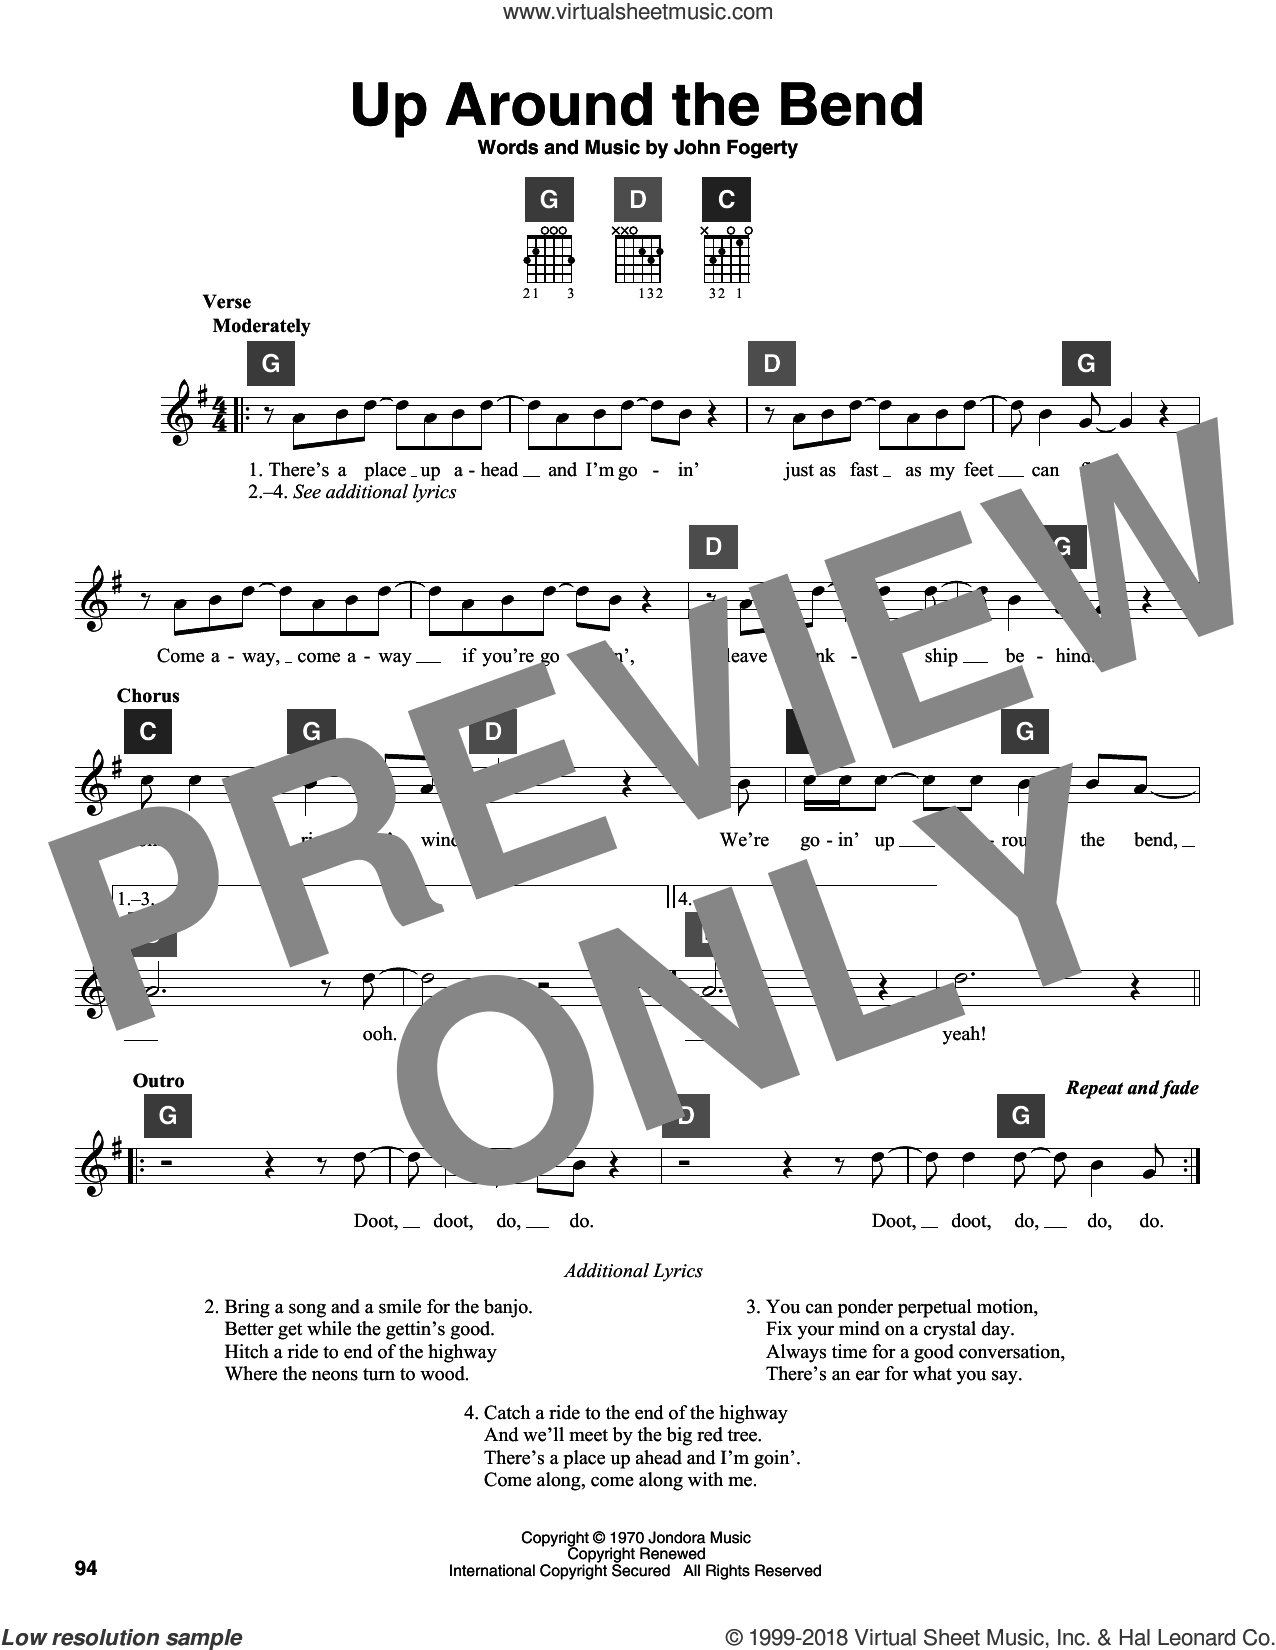 Up Around The Bend sheet music for guitar solo (ChordBuddy system) by Creedence Clearwater Revival and John Fogerty, intermediate guitar (ChordBuddy system)